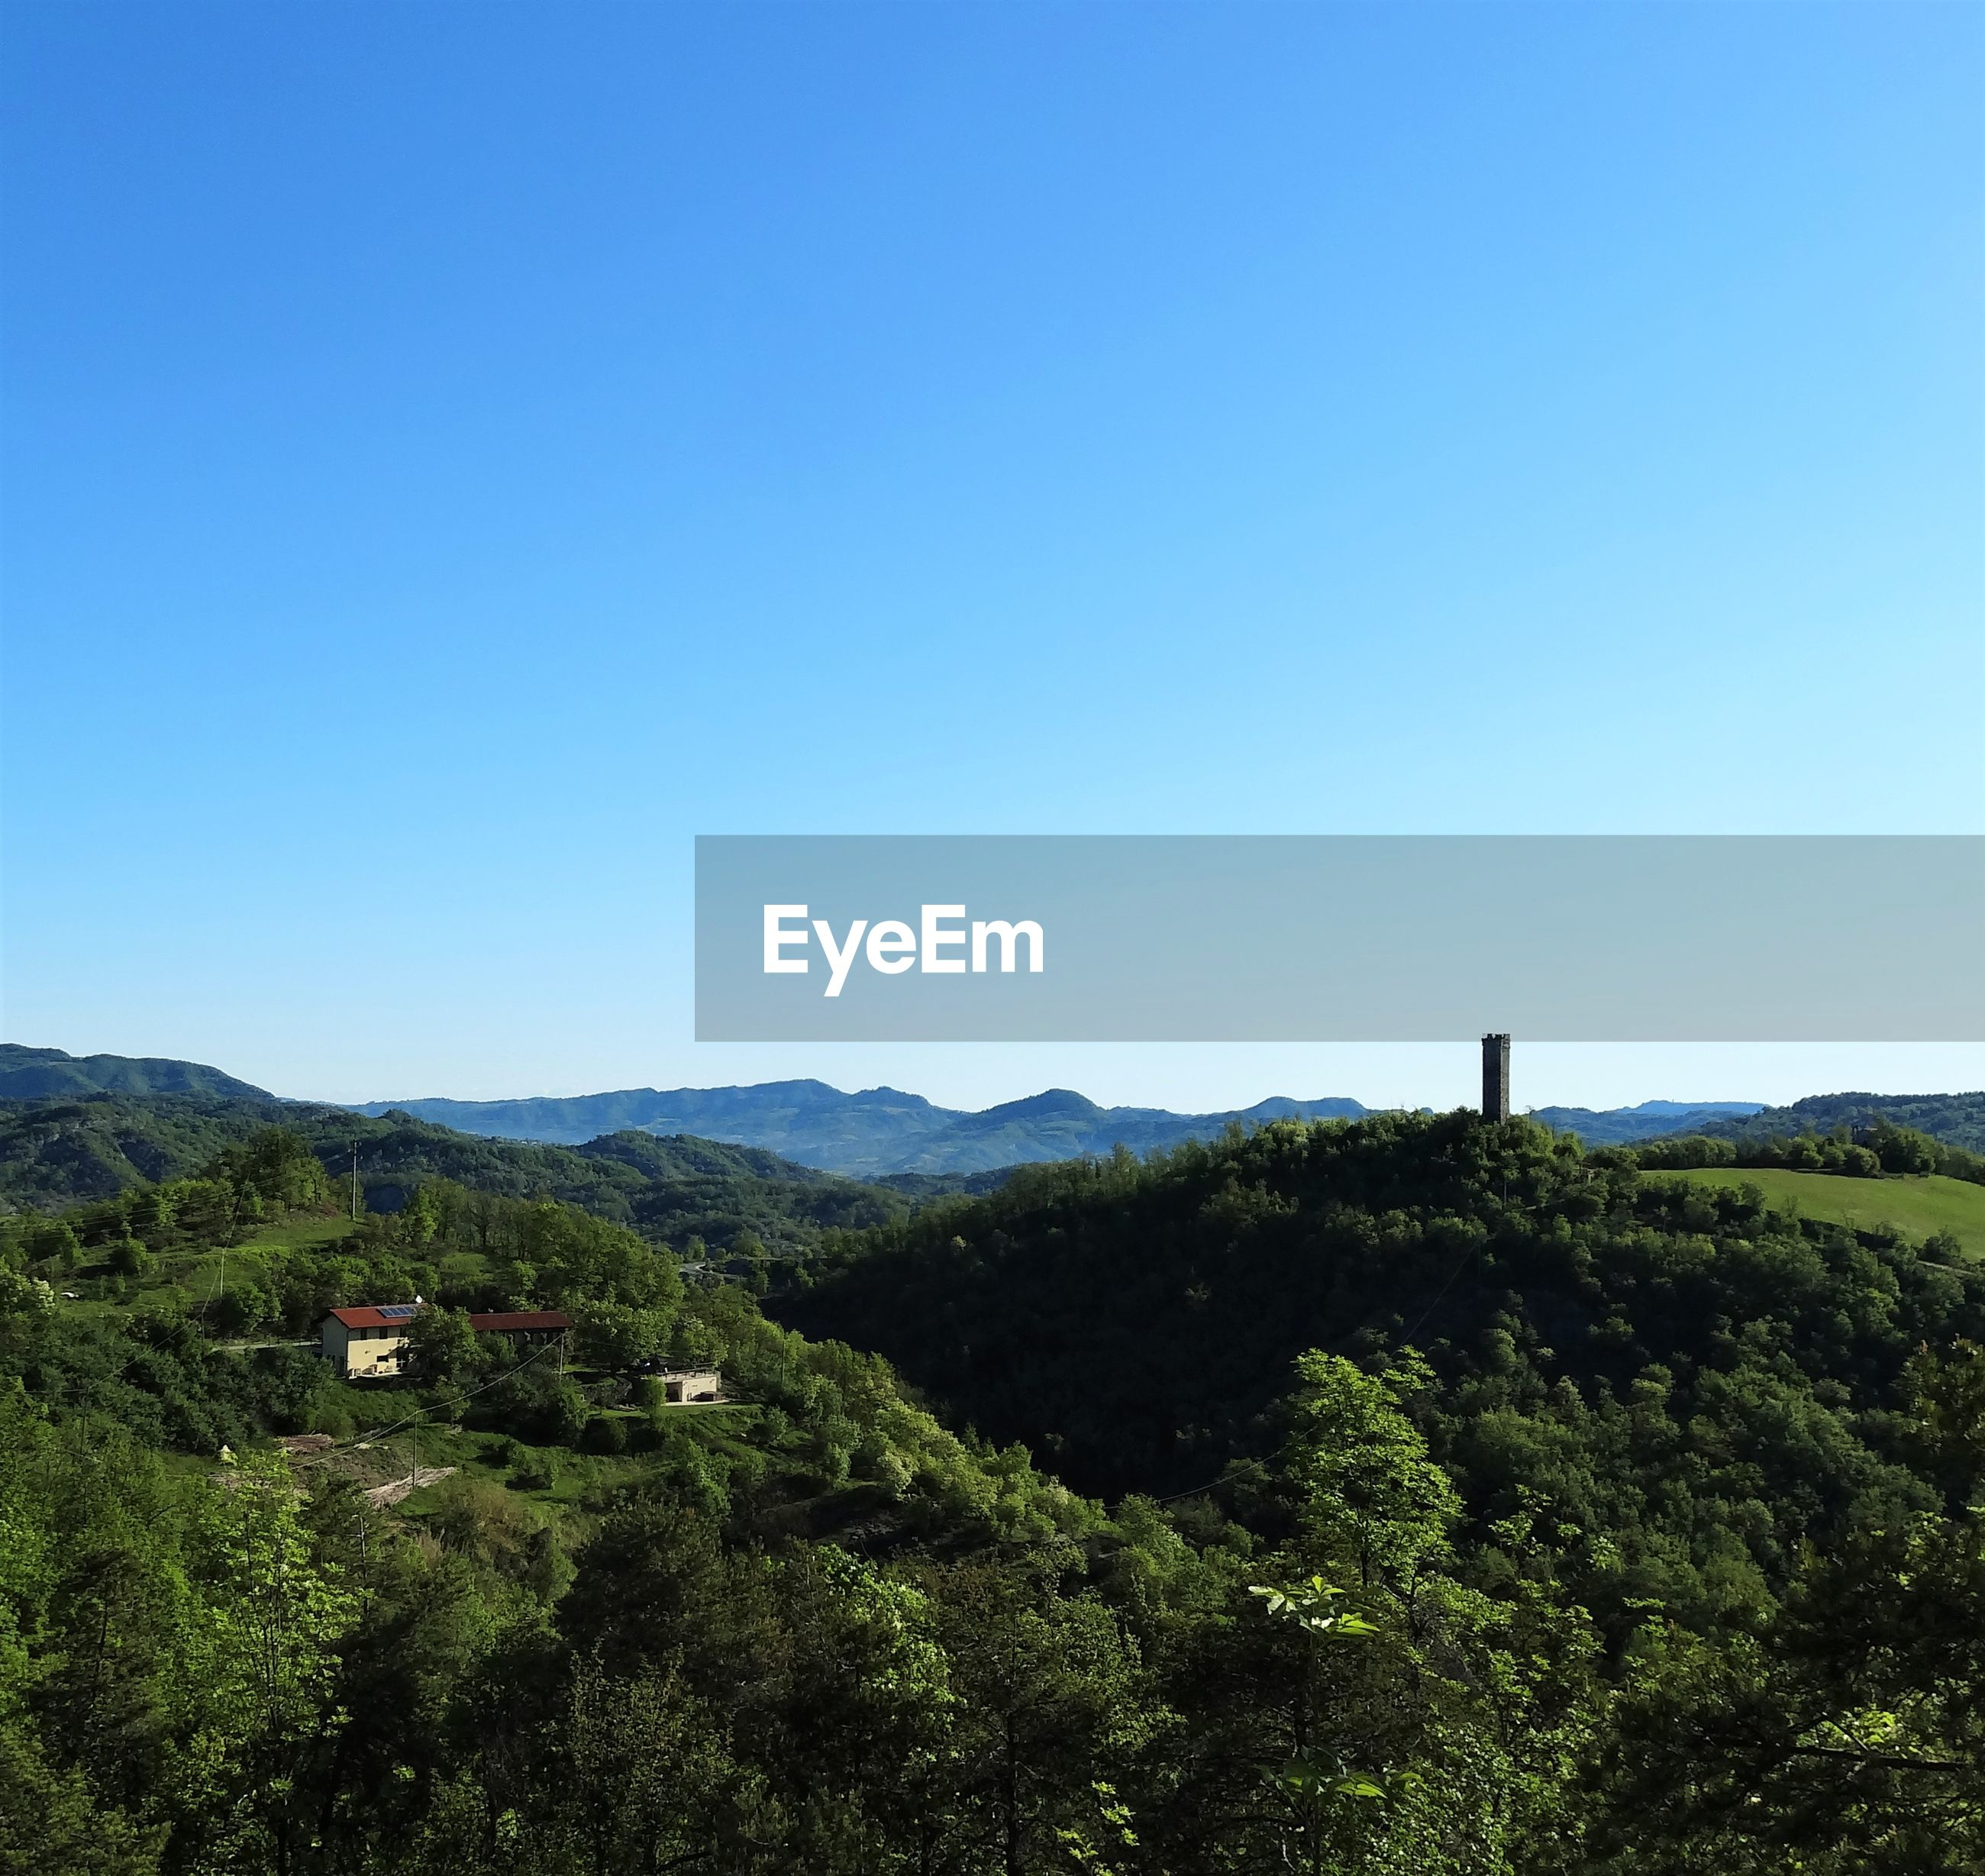 SCENIC VIEW OF TREES ON MOUNTAIN AGAINST CLEAR BLUE SKY